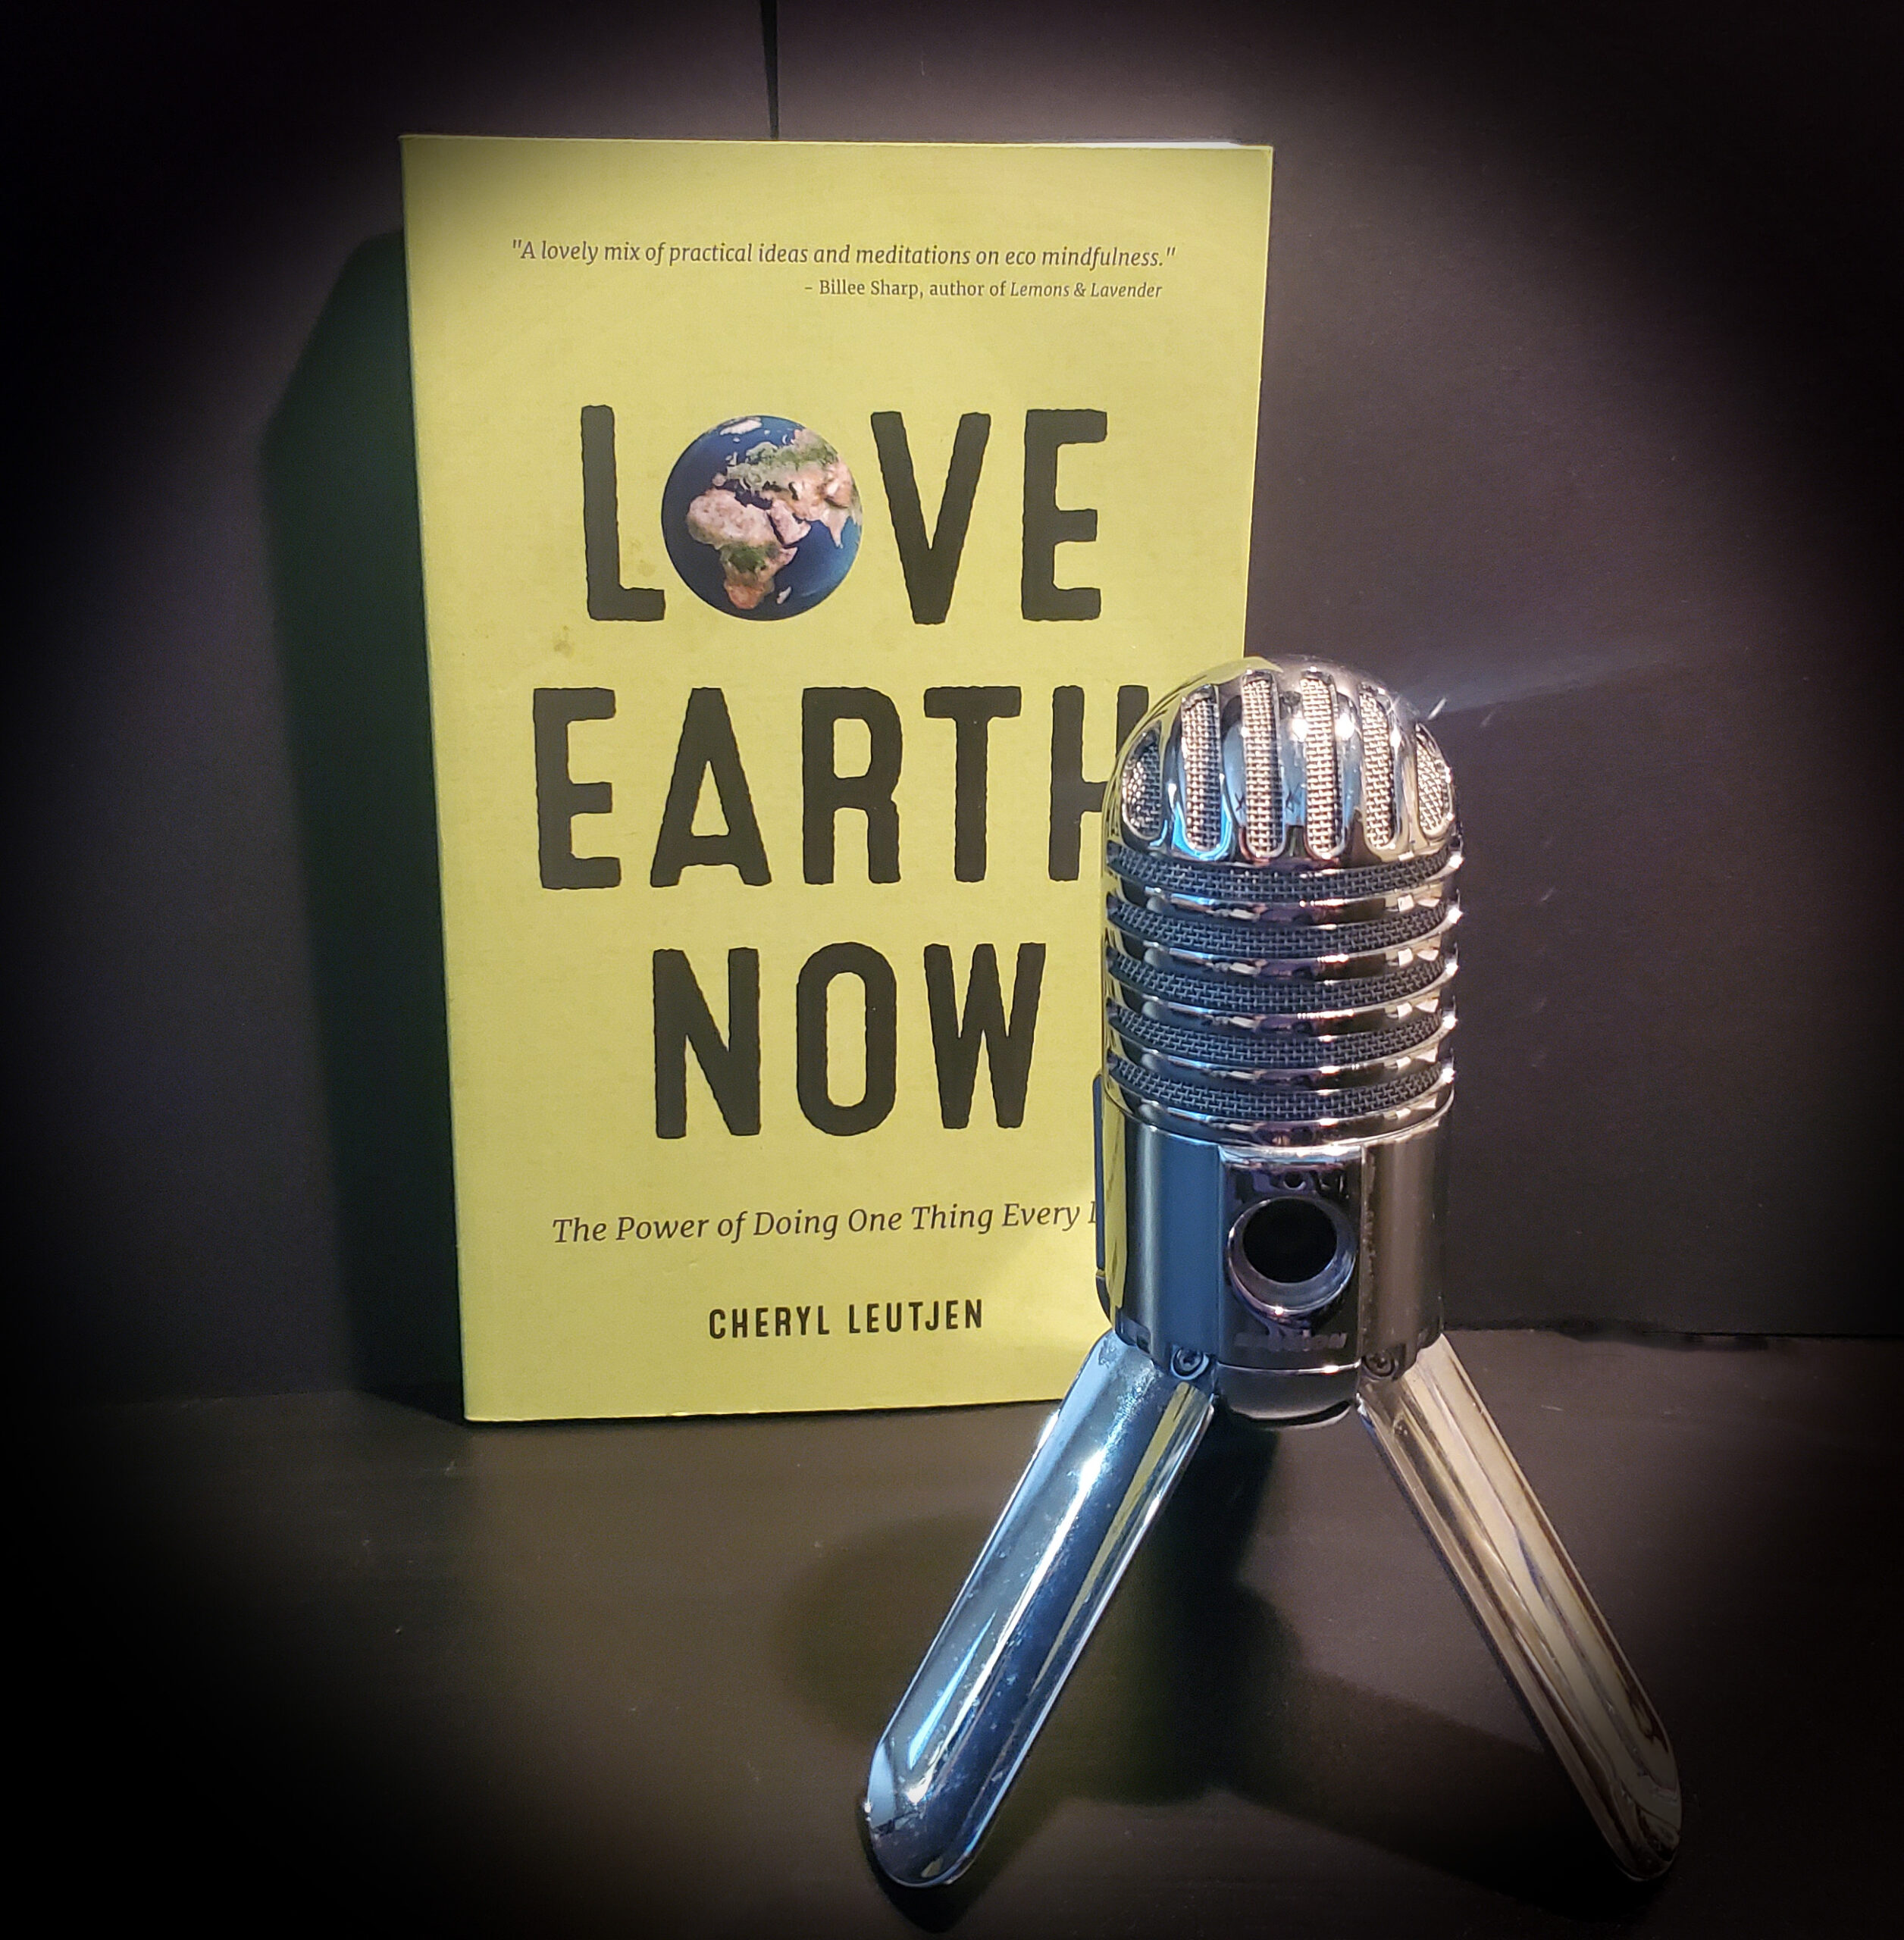 Love Earth Now book